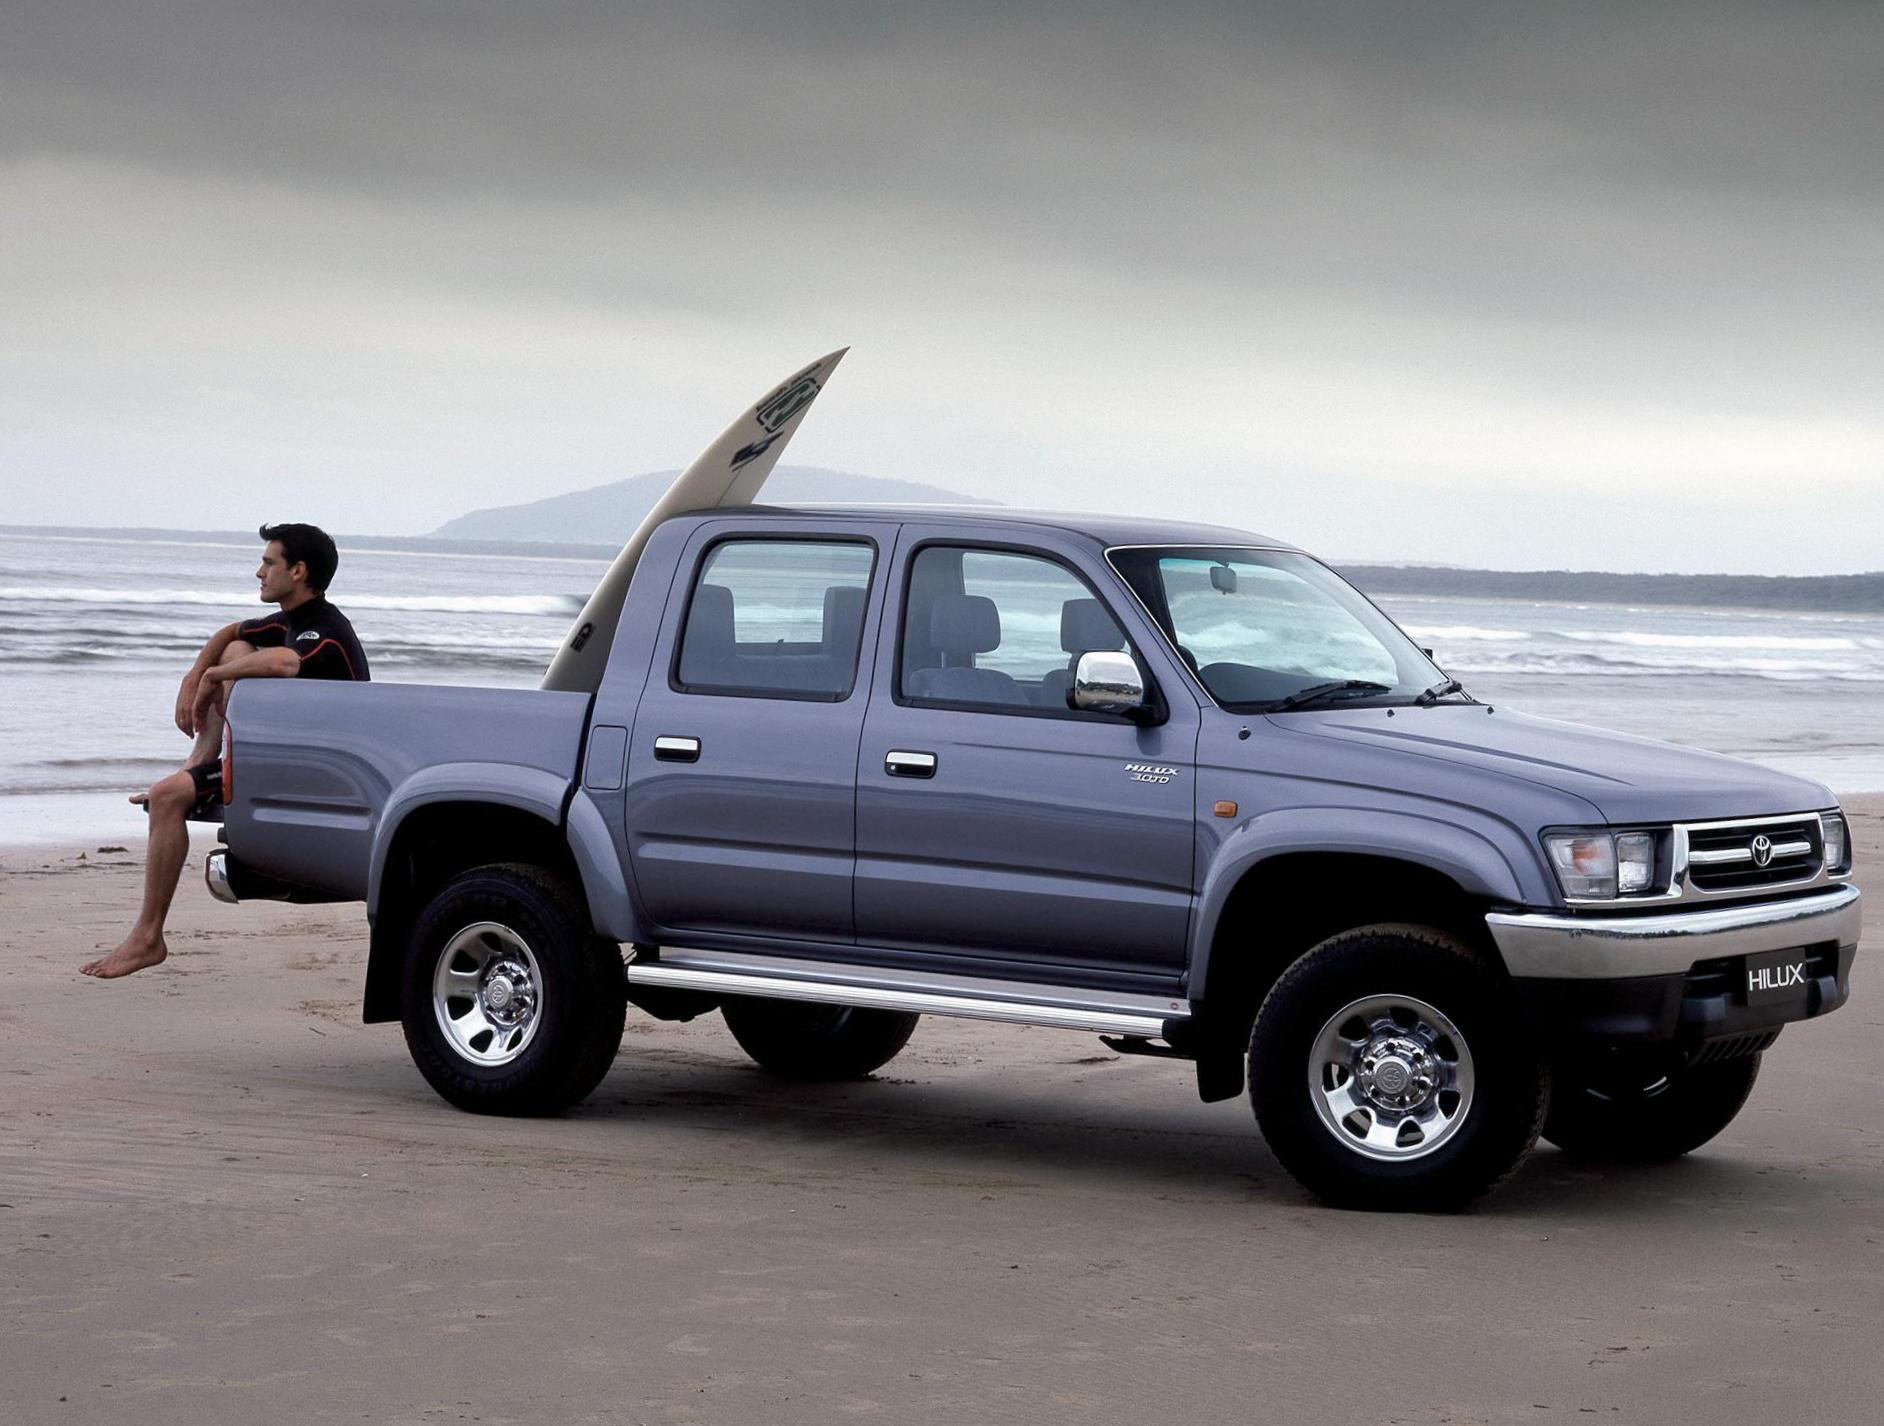 Hilux Double Cab Toyota cost 2014